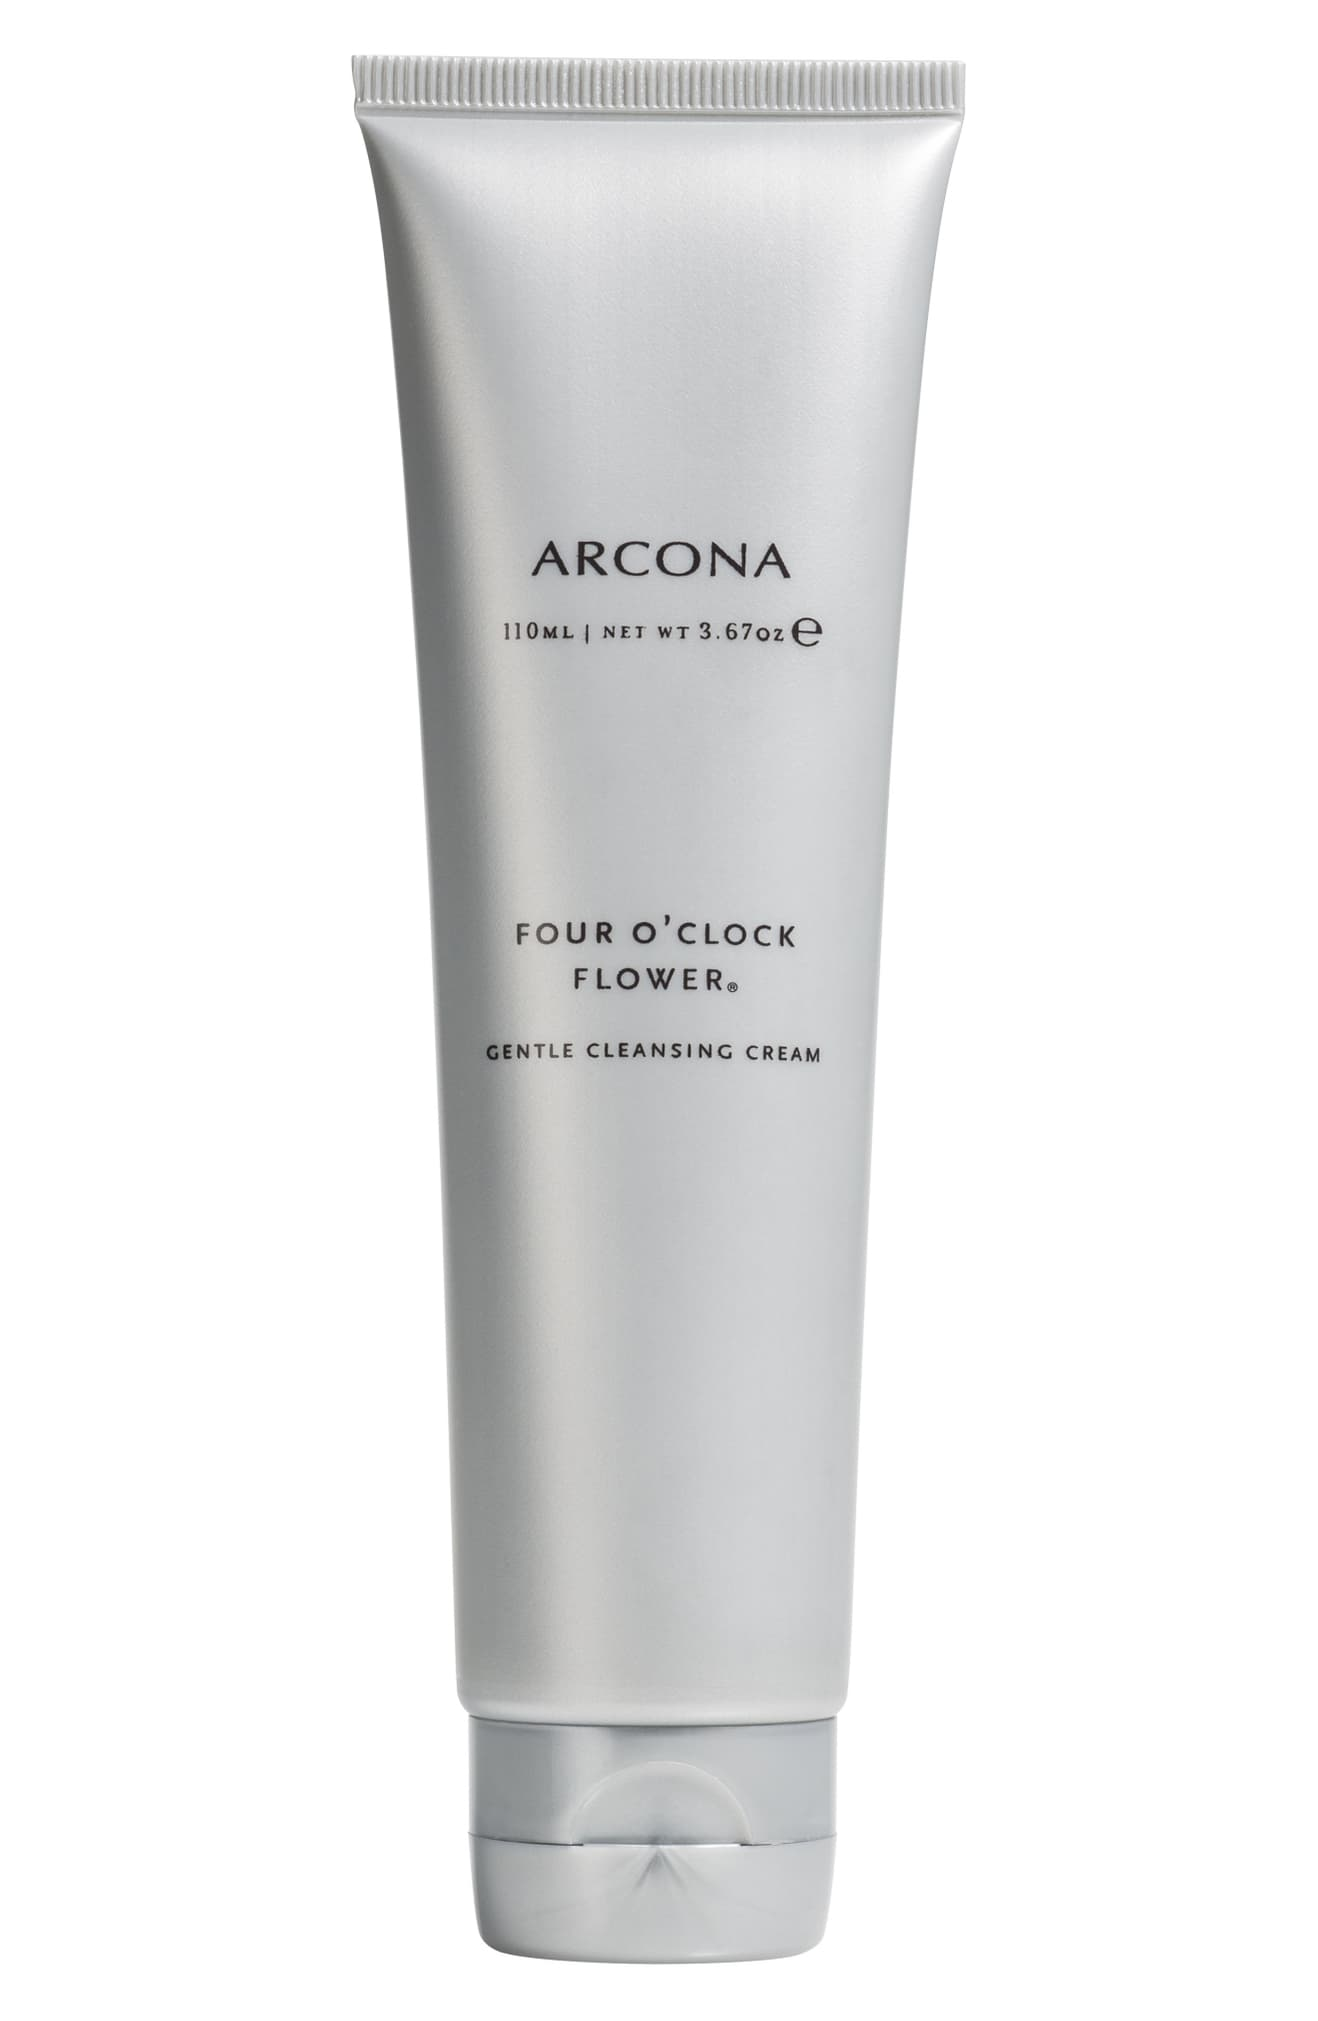 ARCONA Four O'Clock Flower Gentle Cleansing Cream